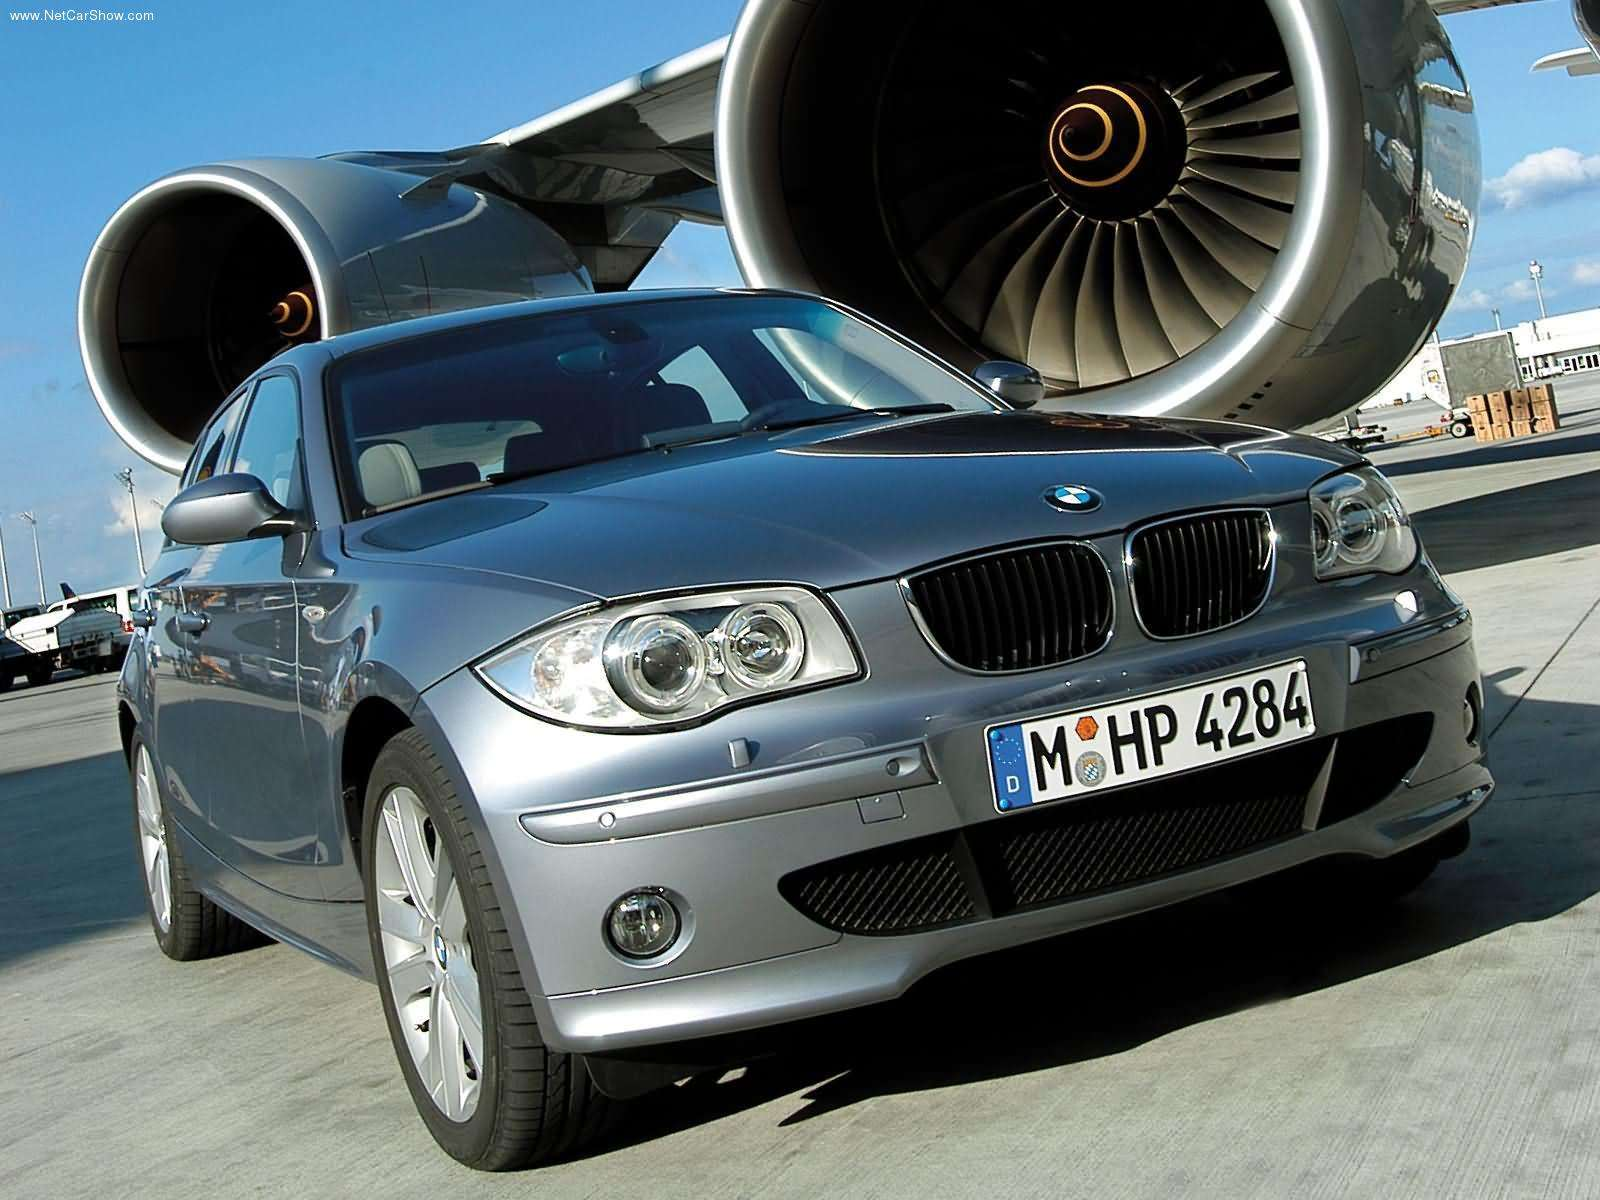 BMW 1 Series 5 Door Hatchback 2009